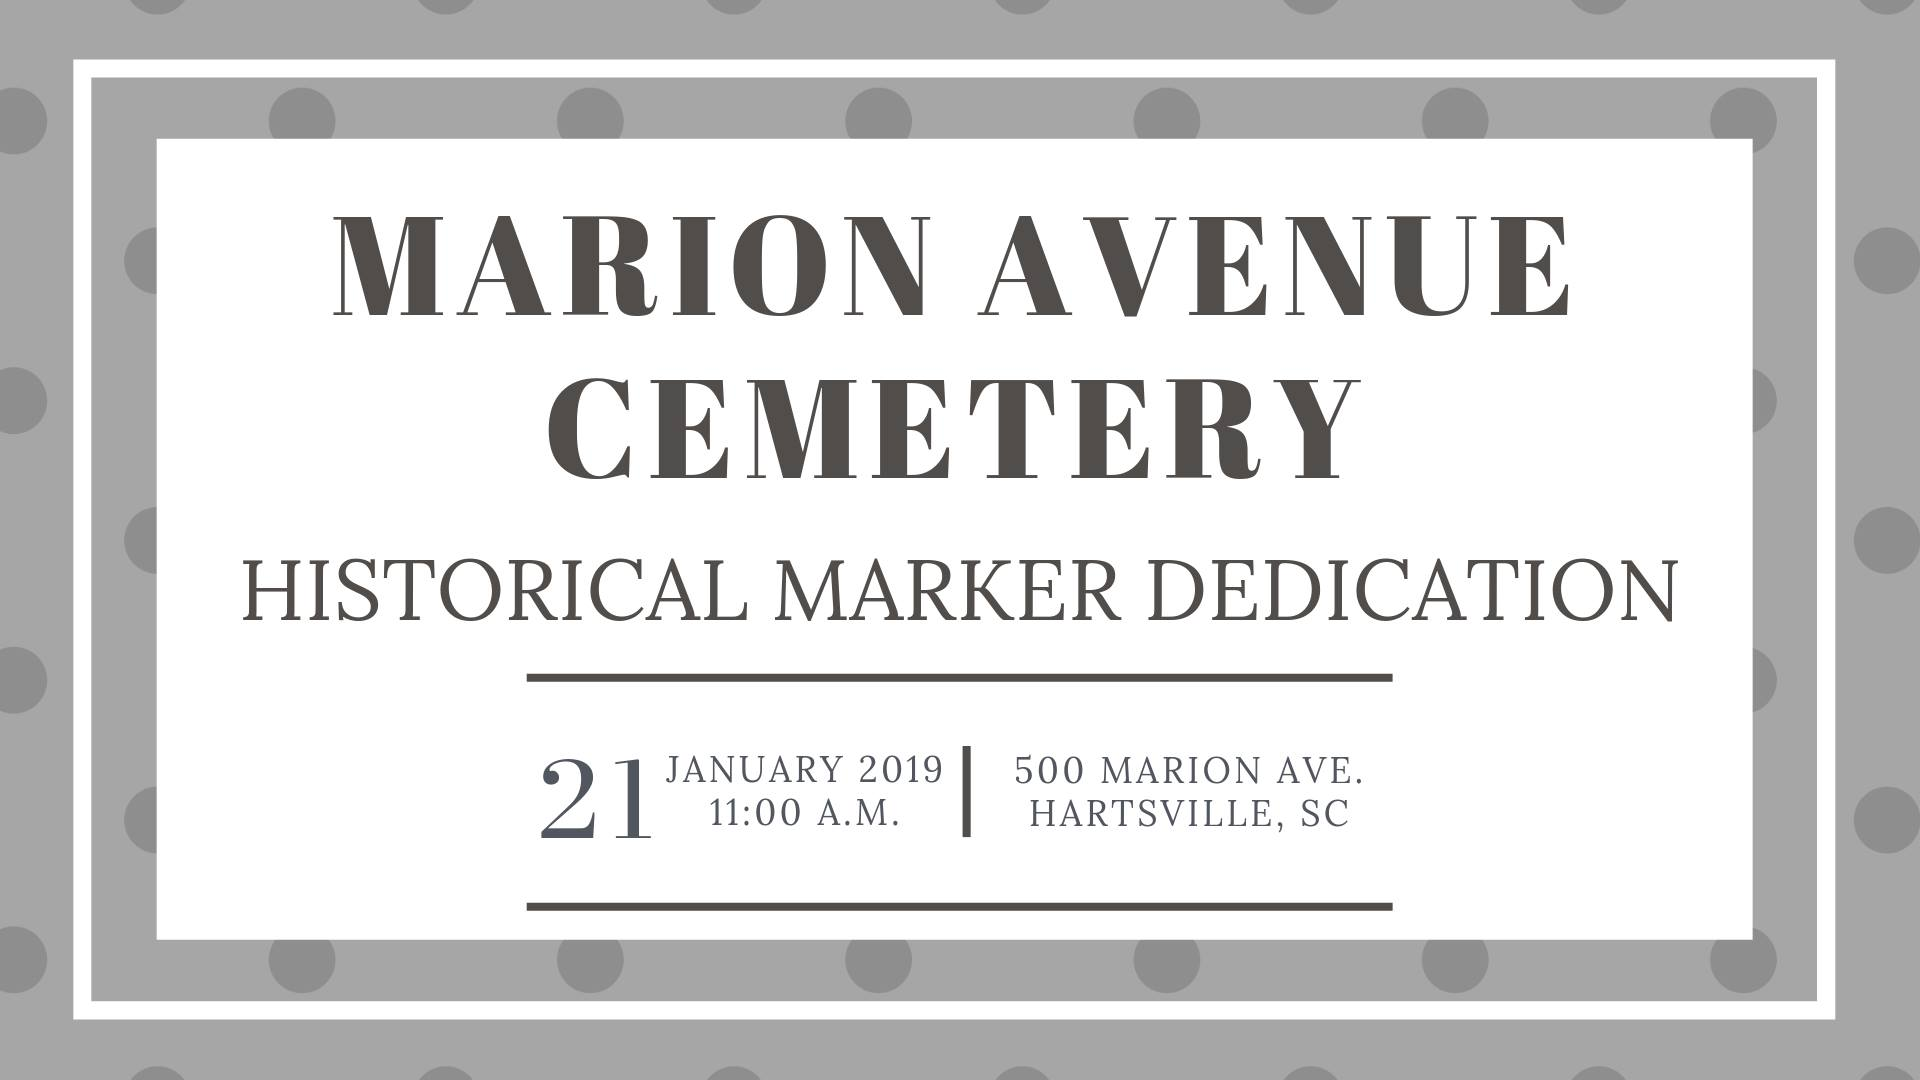 Marion Avenue Cemetery Historical Marker Dedication January 21, 2019 11am banner image